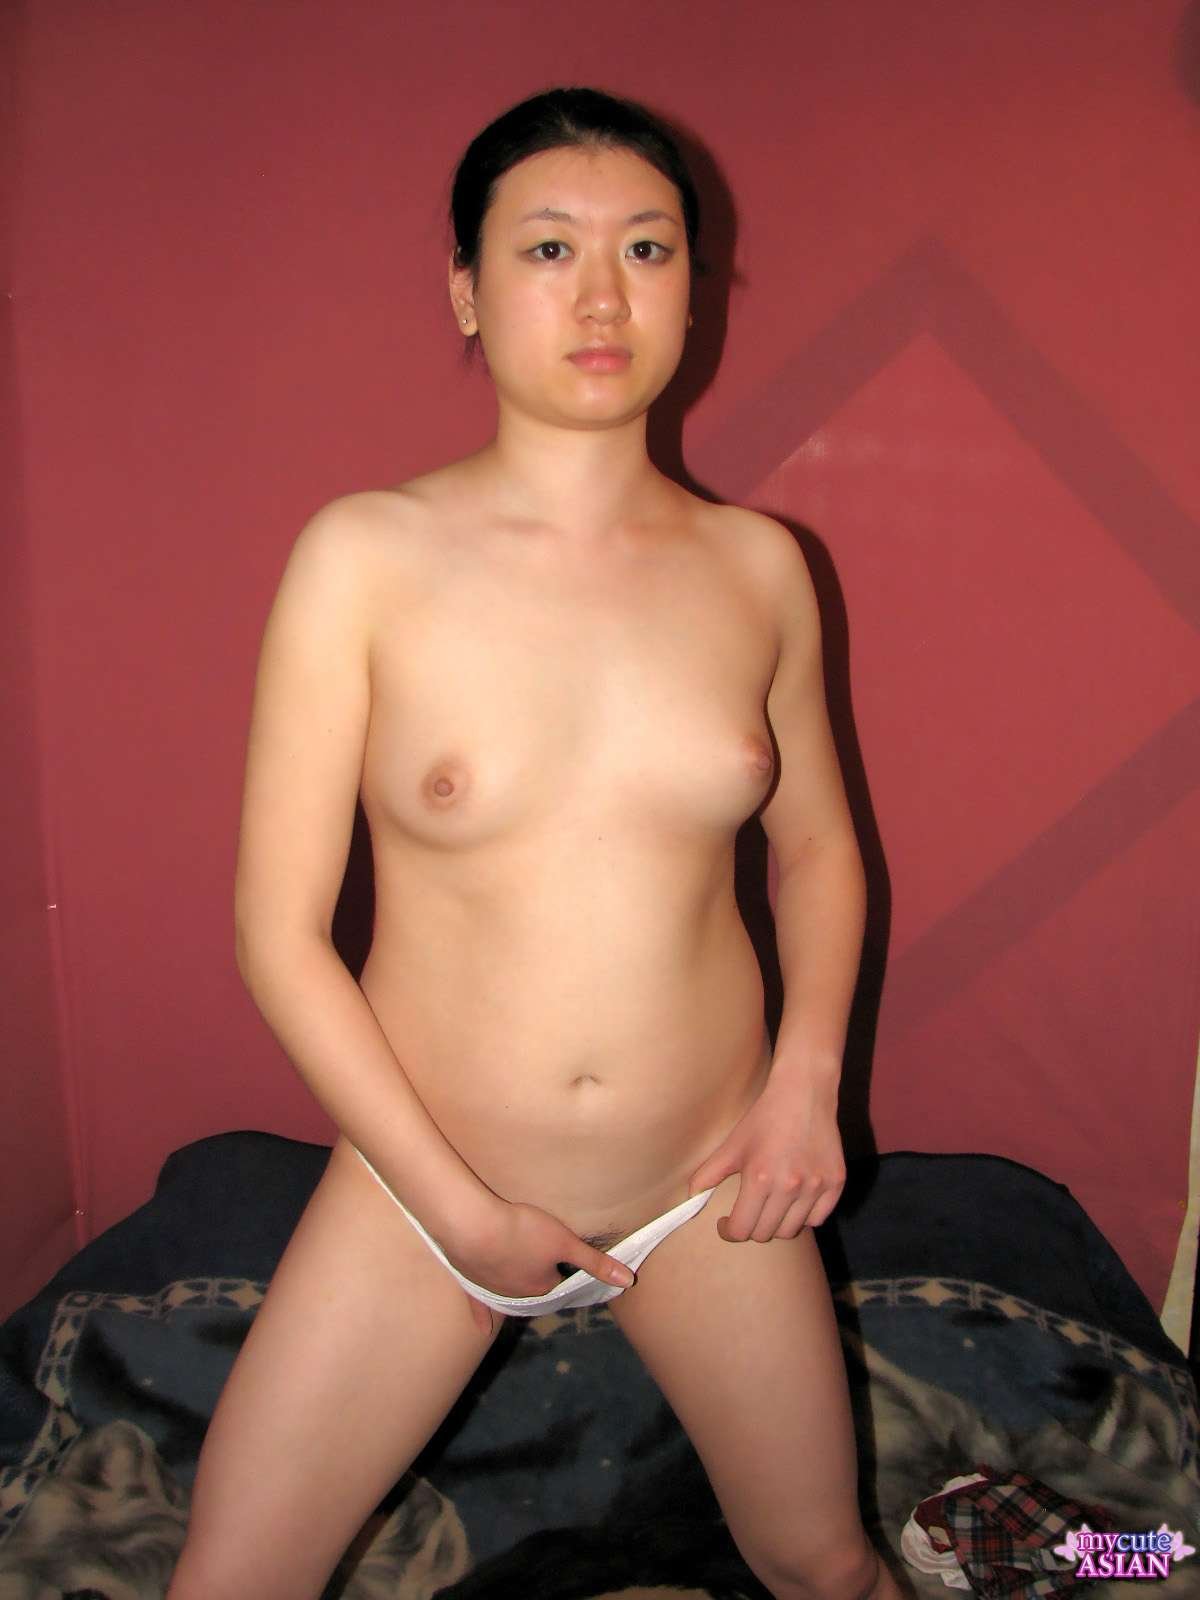 Amateur wife sexting